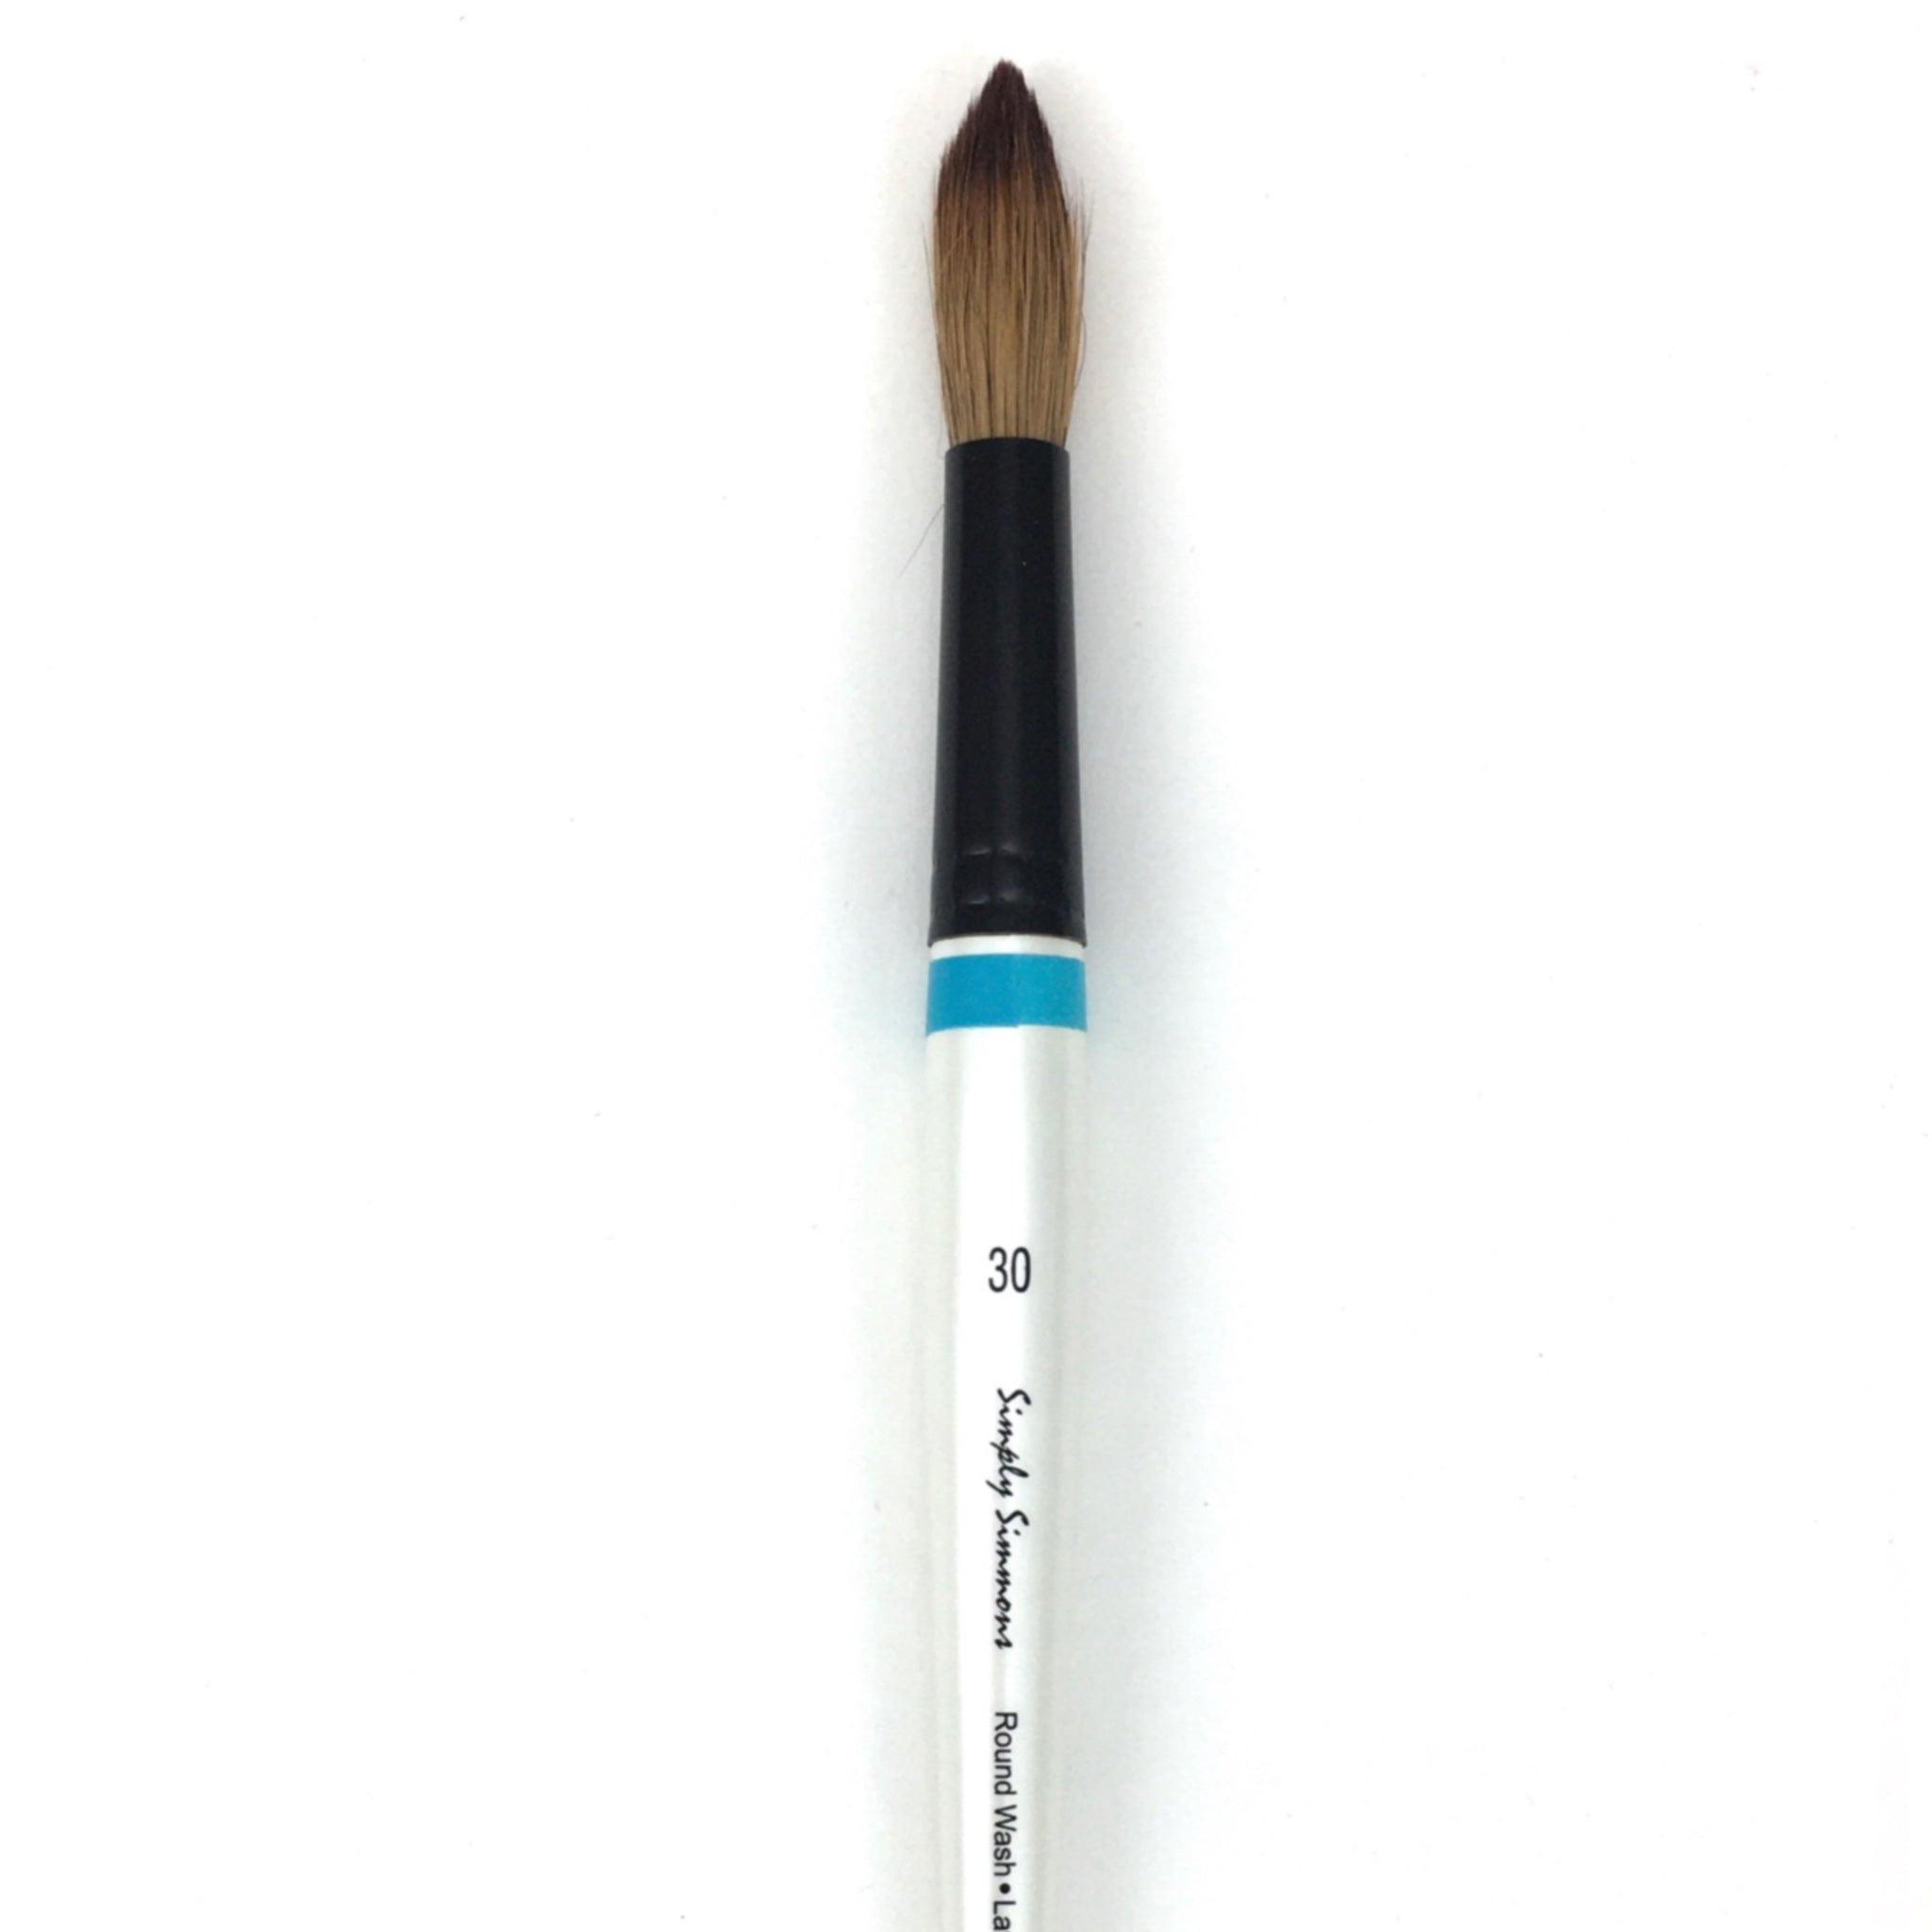 Robert Simmons Simply Simmons Watercolor Brush (Short Handle) - Round Wash / - #30 / - natural by Robert Simmons - K. A. Artist Shop